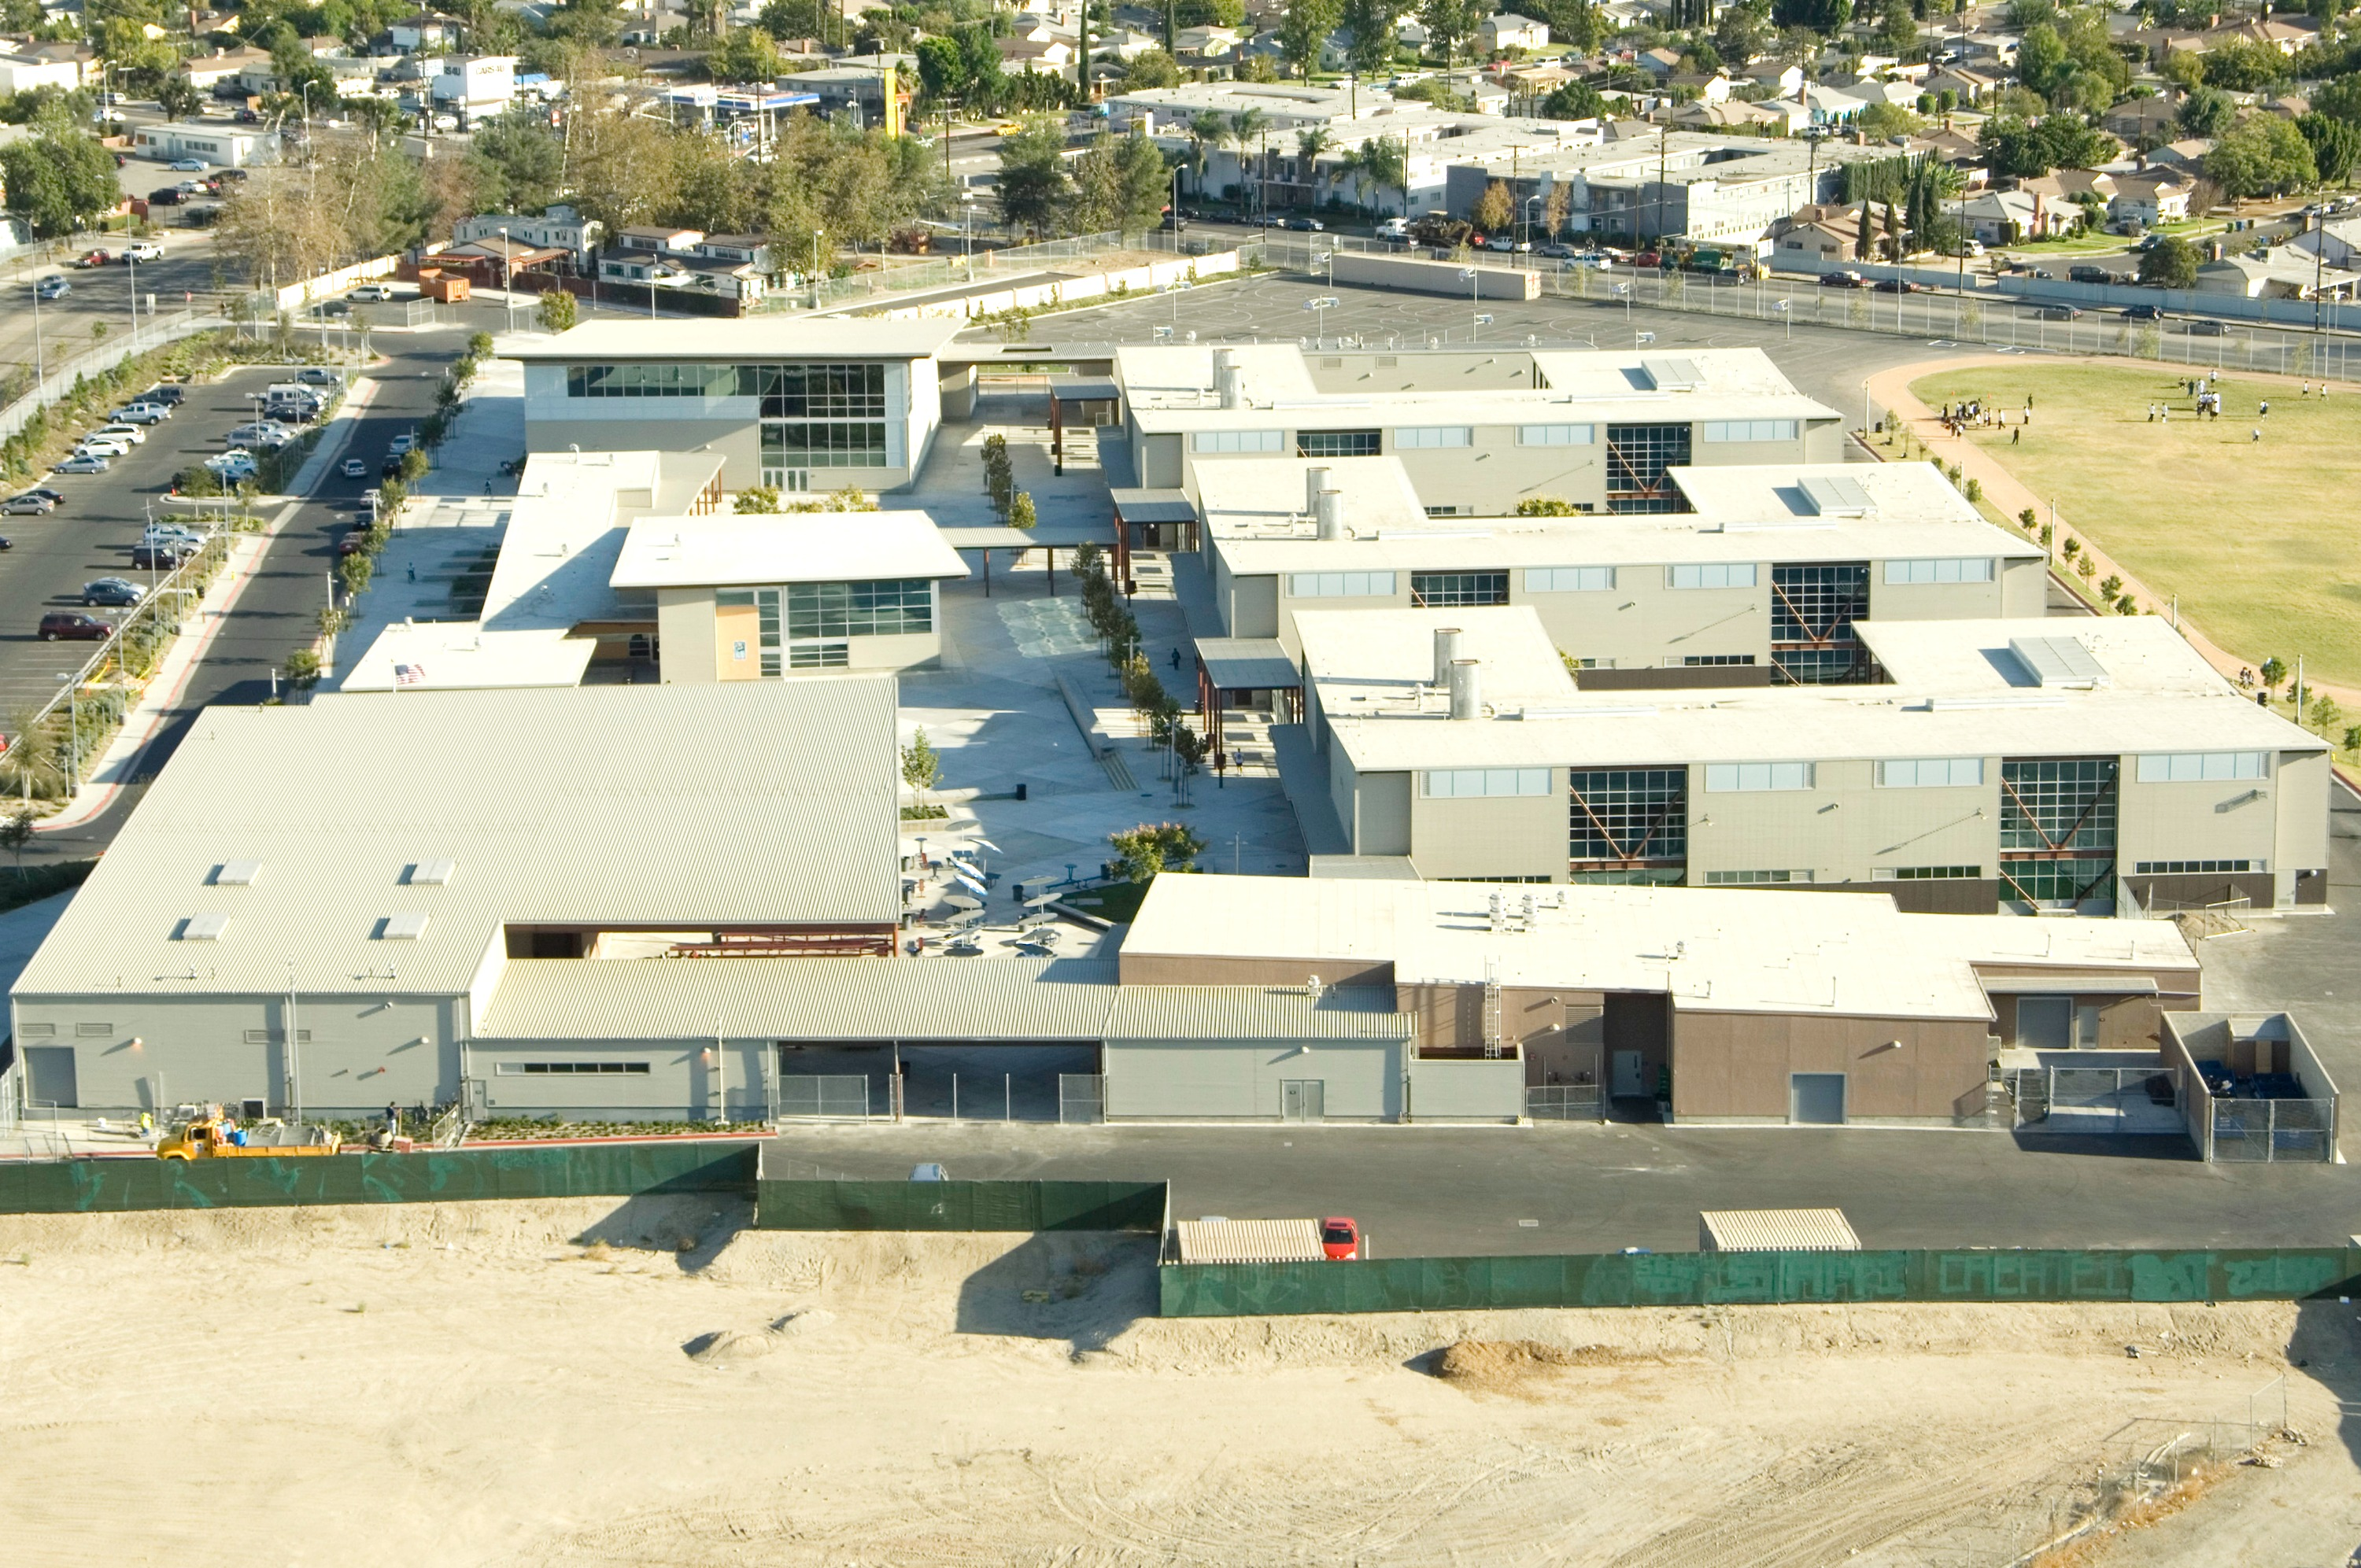 East Valley High School